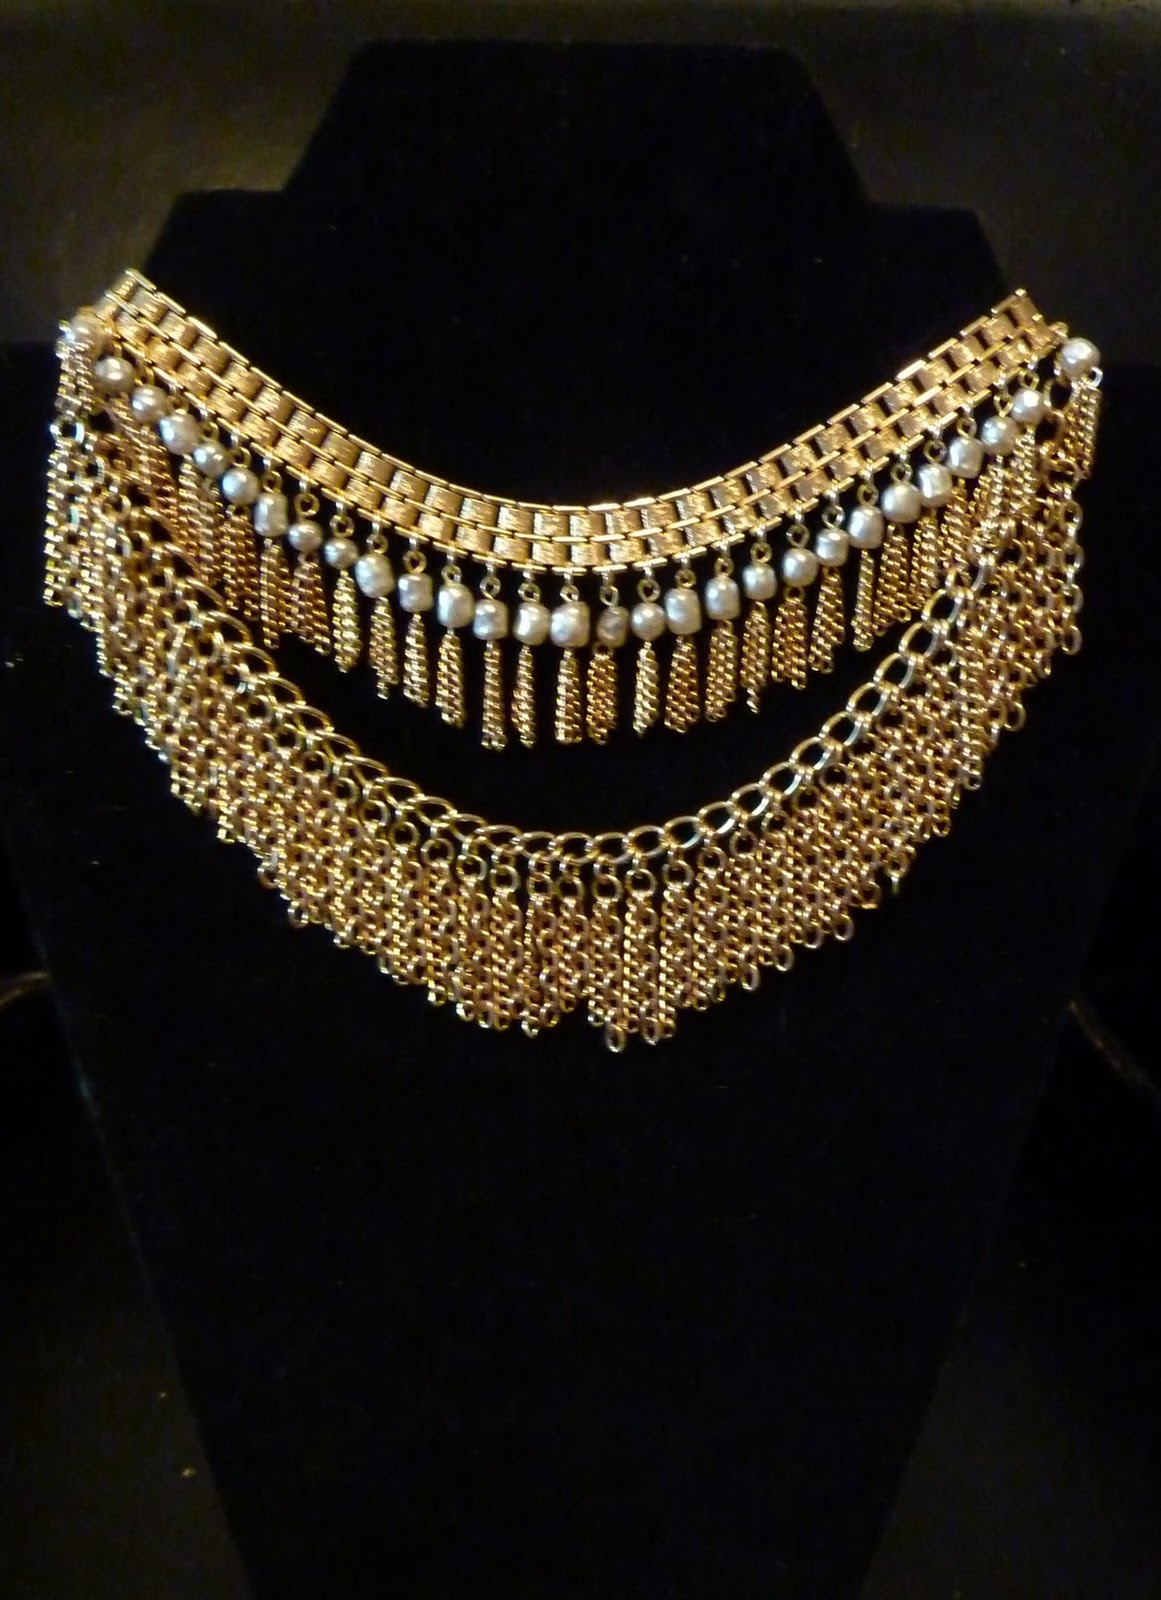 Refined Armour Cleopatra Inspired Jewelry